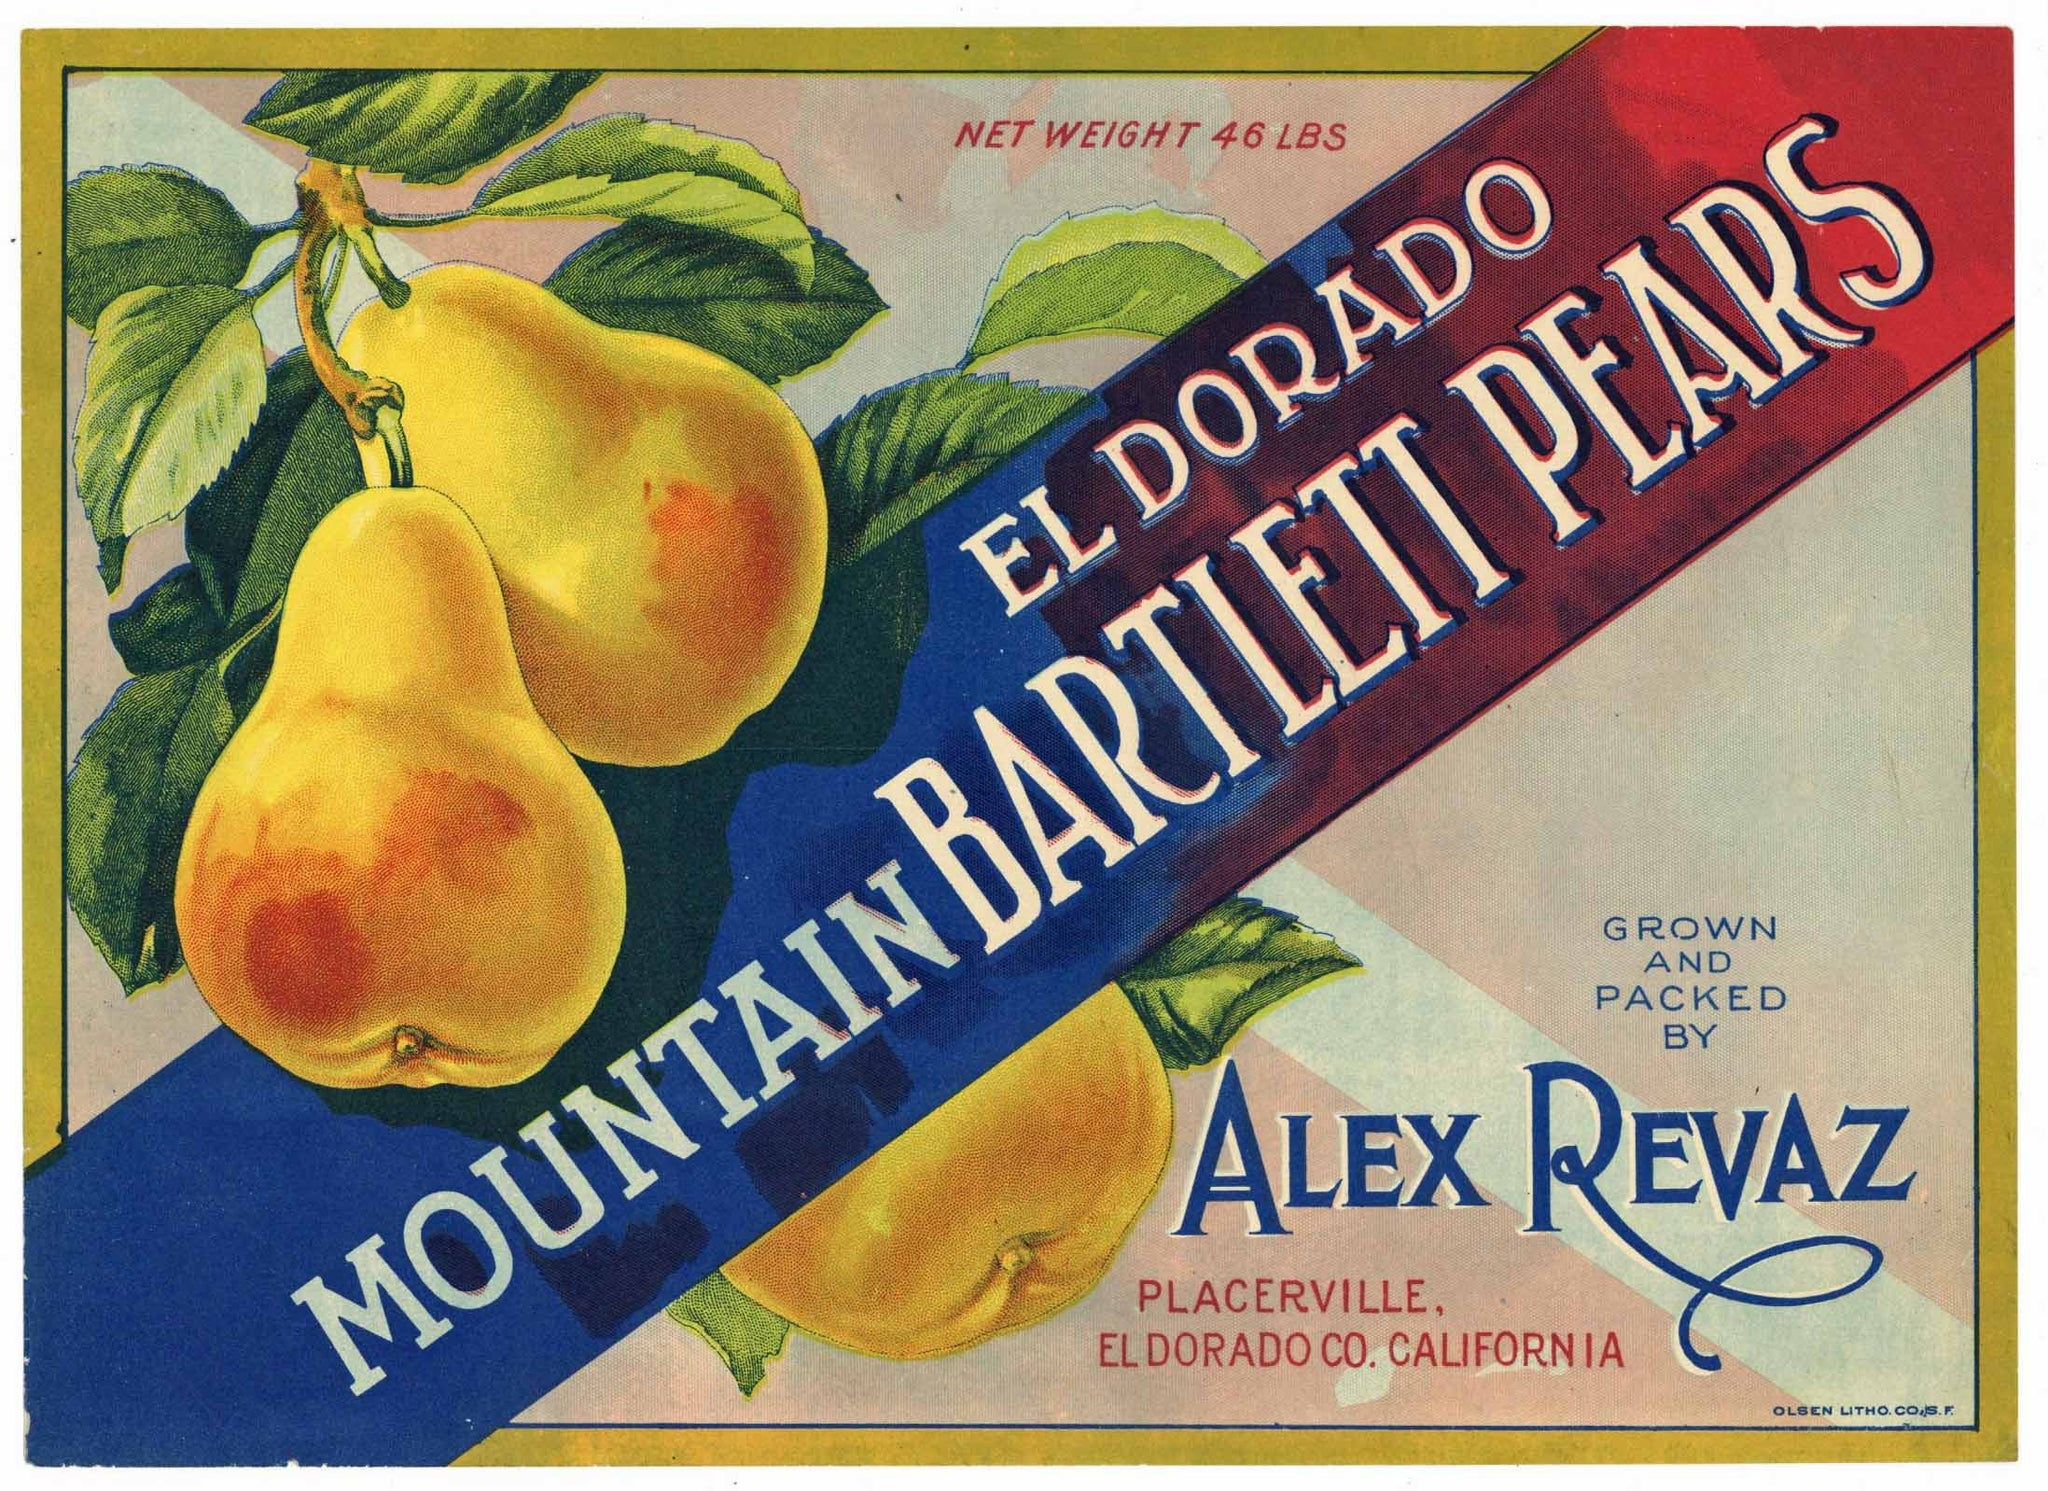 Alex Revaz Brand Vintage Placerville California Pear Crate Label